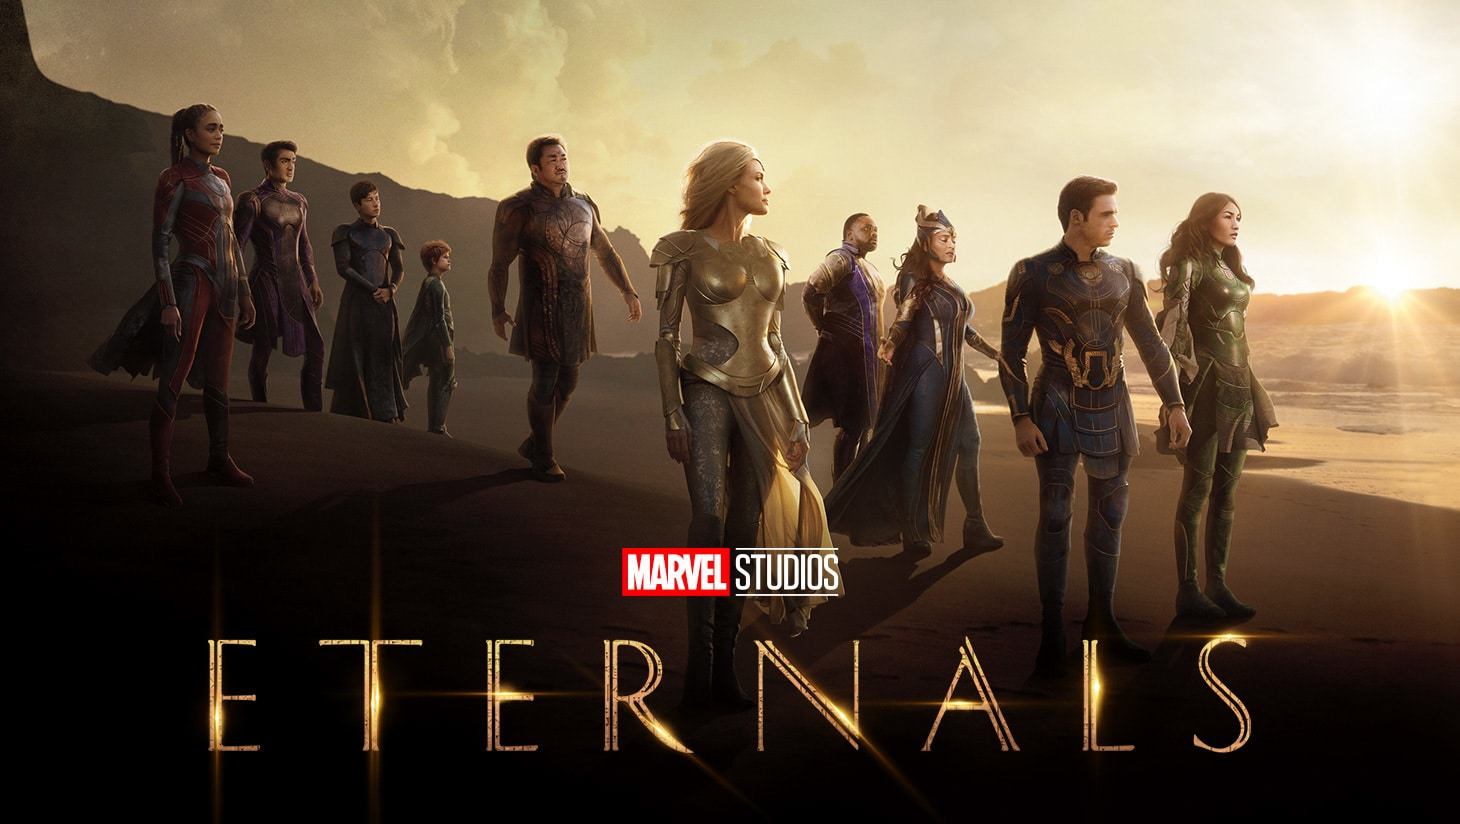 A group shot of the Super Heroes in Marvel Studios Eternals movie